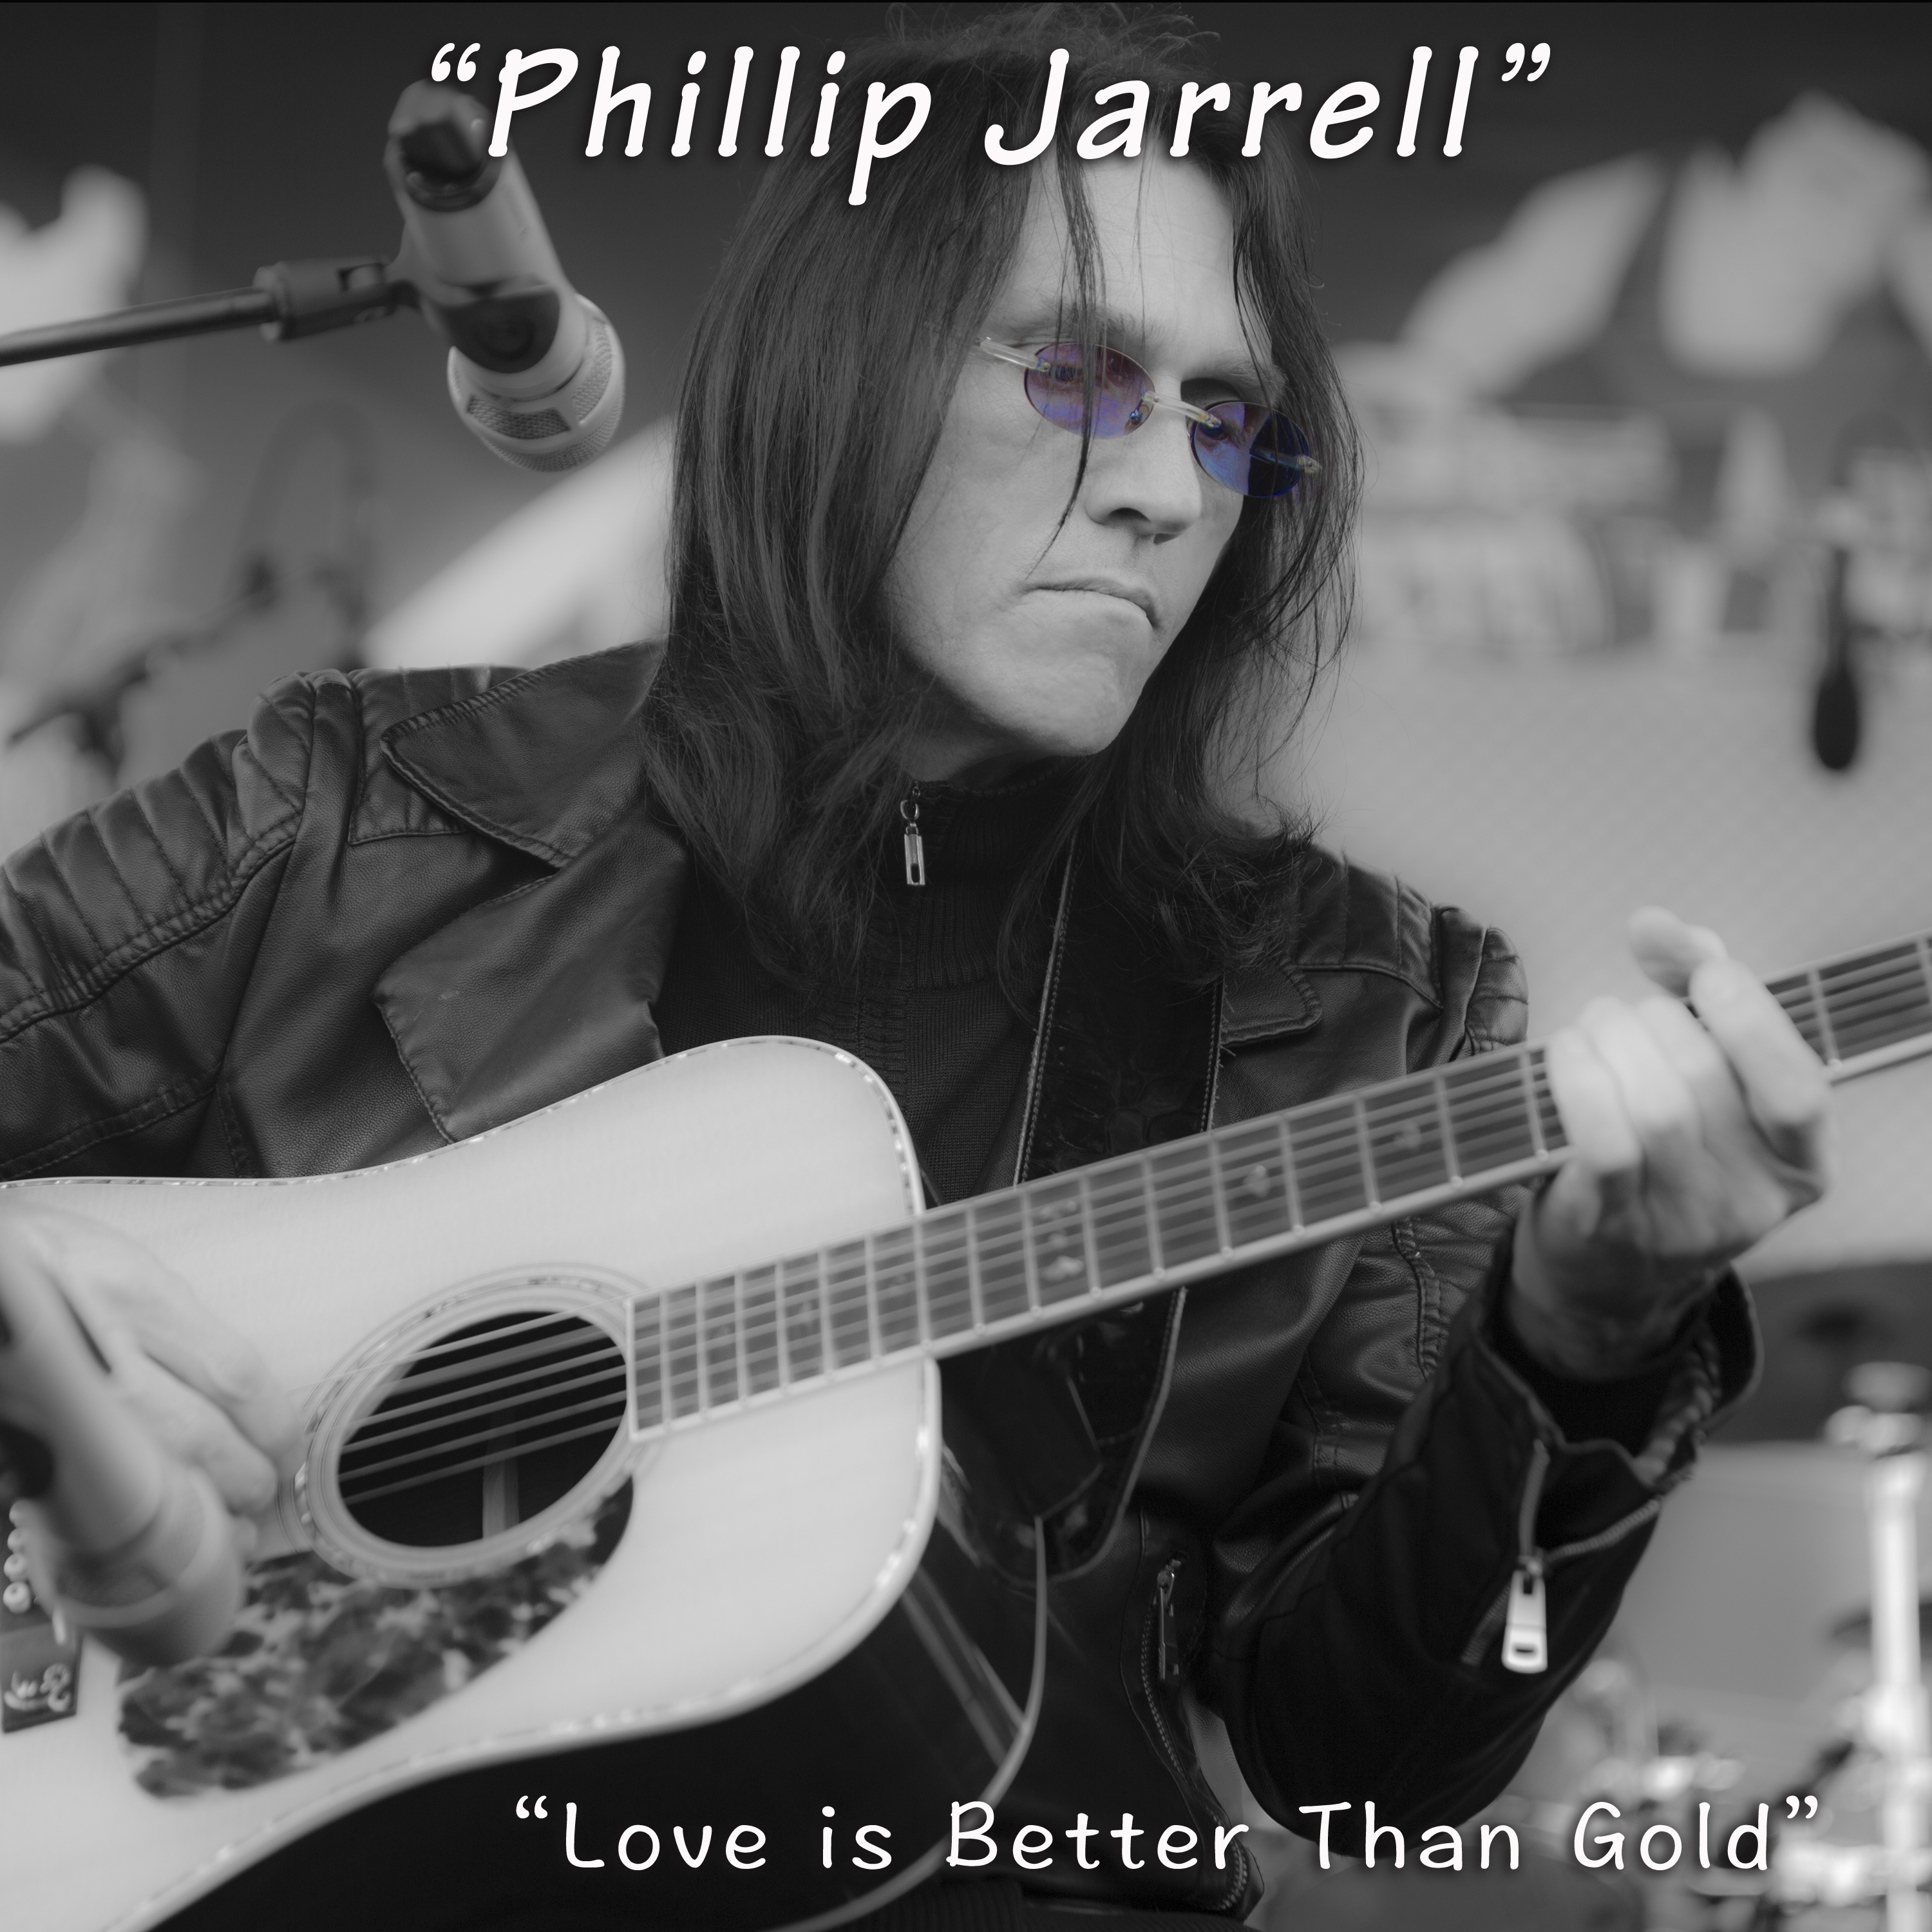 Phillip Jarrell Live Performance at the F1 Grand Prix Shanghai  CD Cover